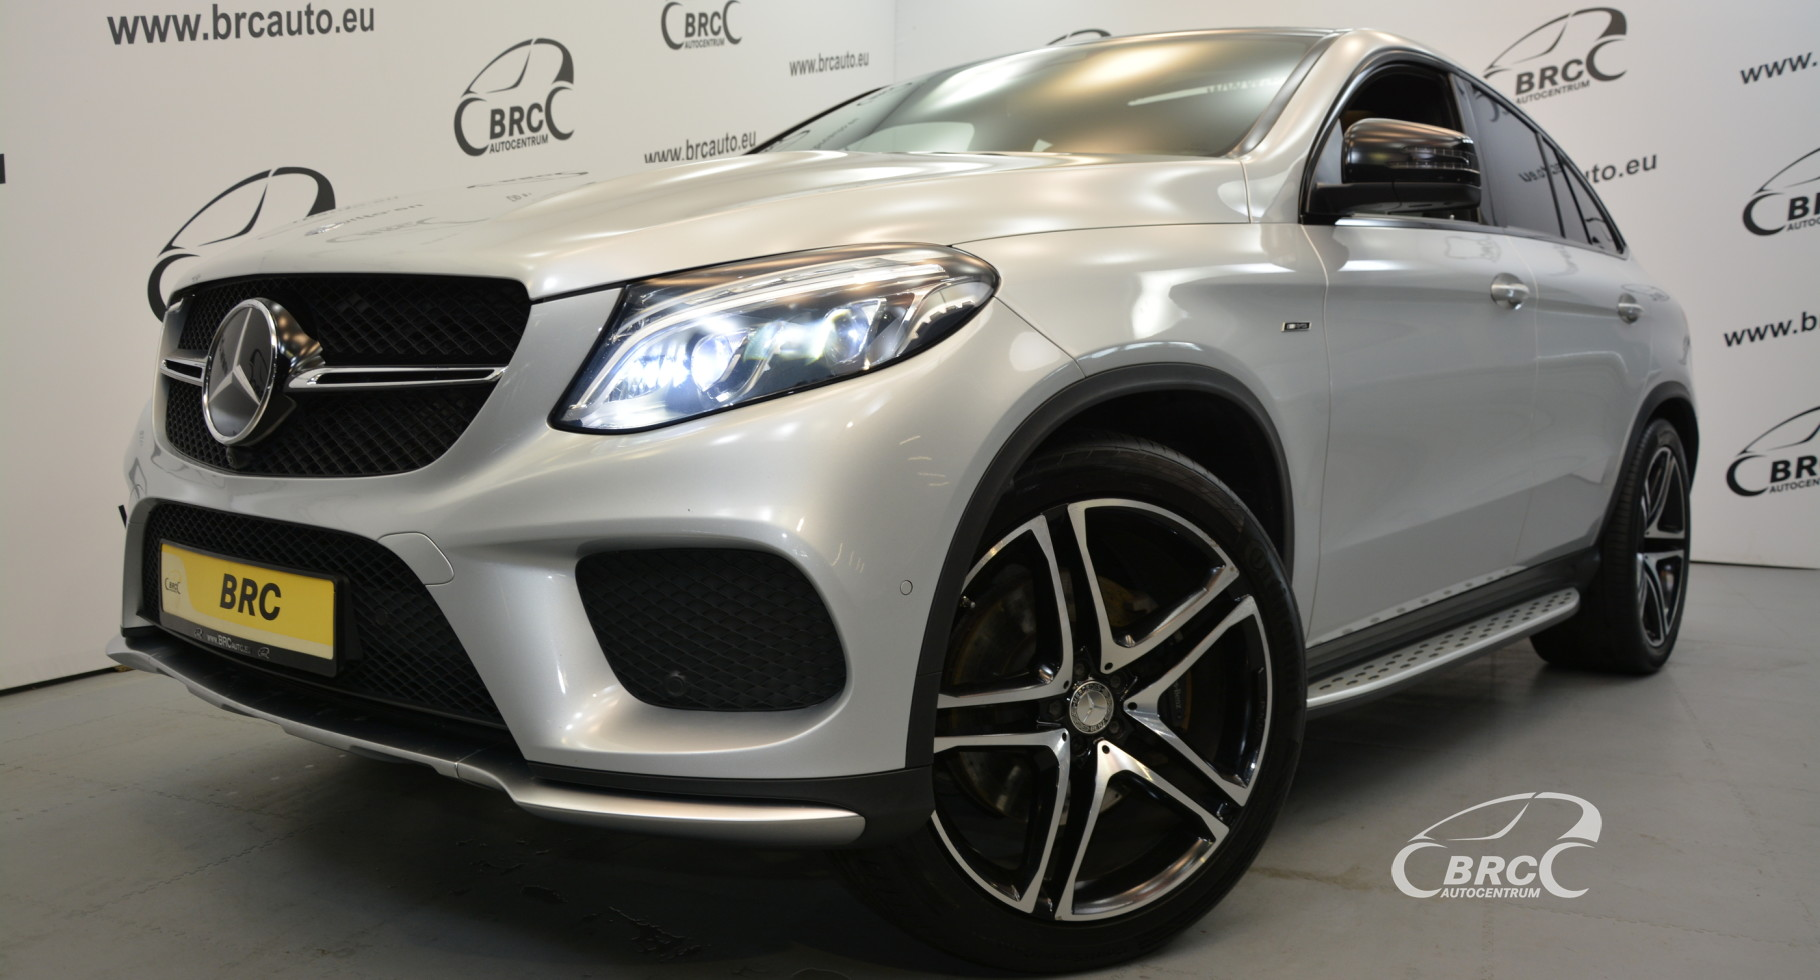 Mercedes-Benz GLE 450 AMG 4 Matic Automatas